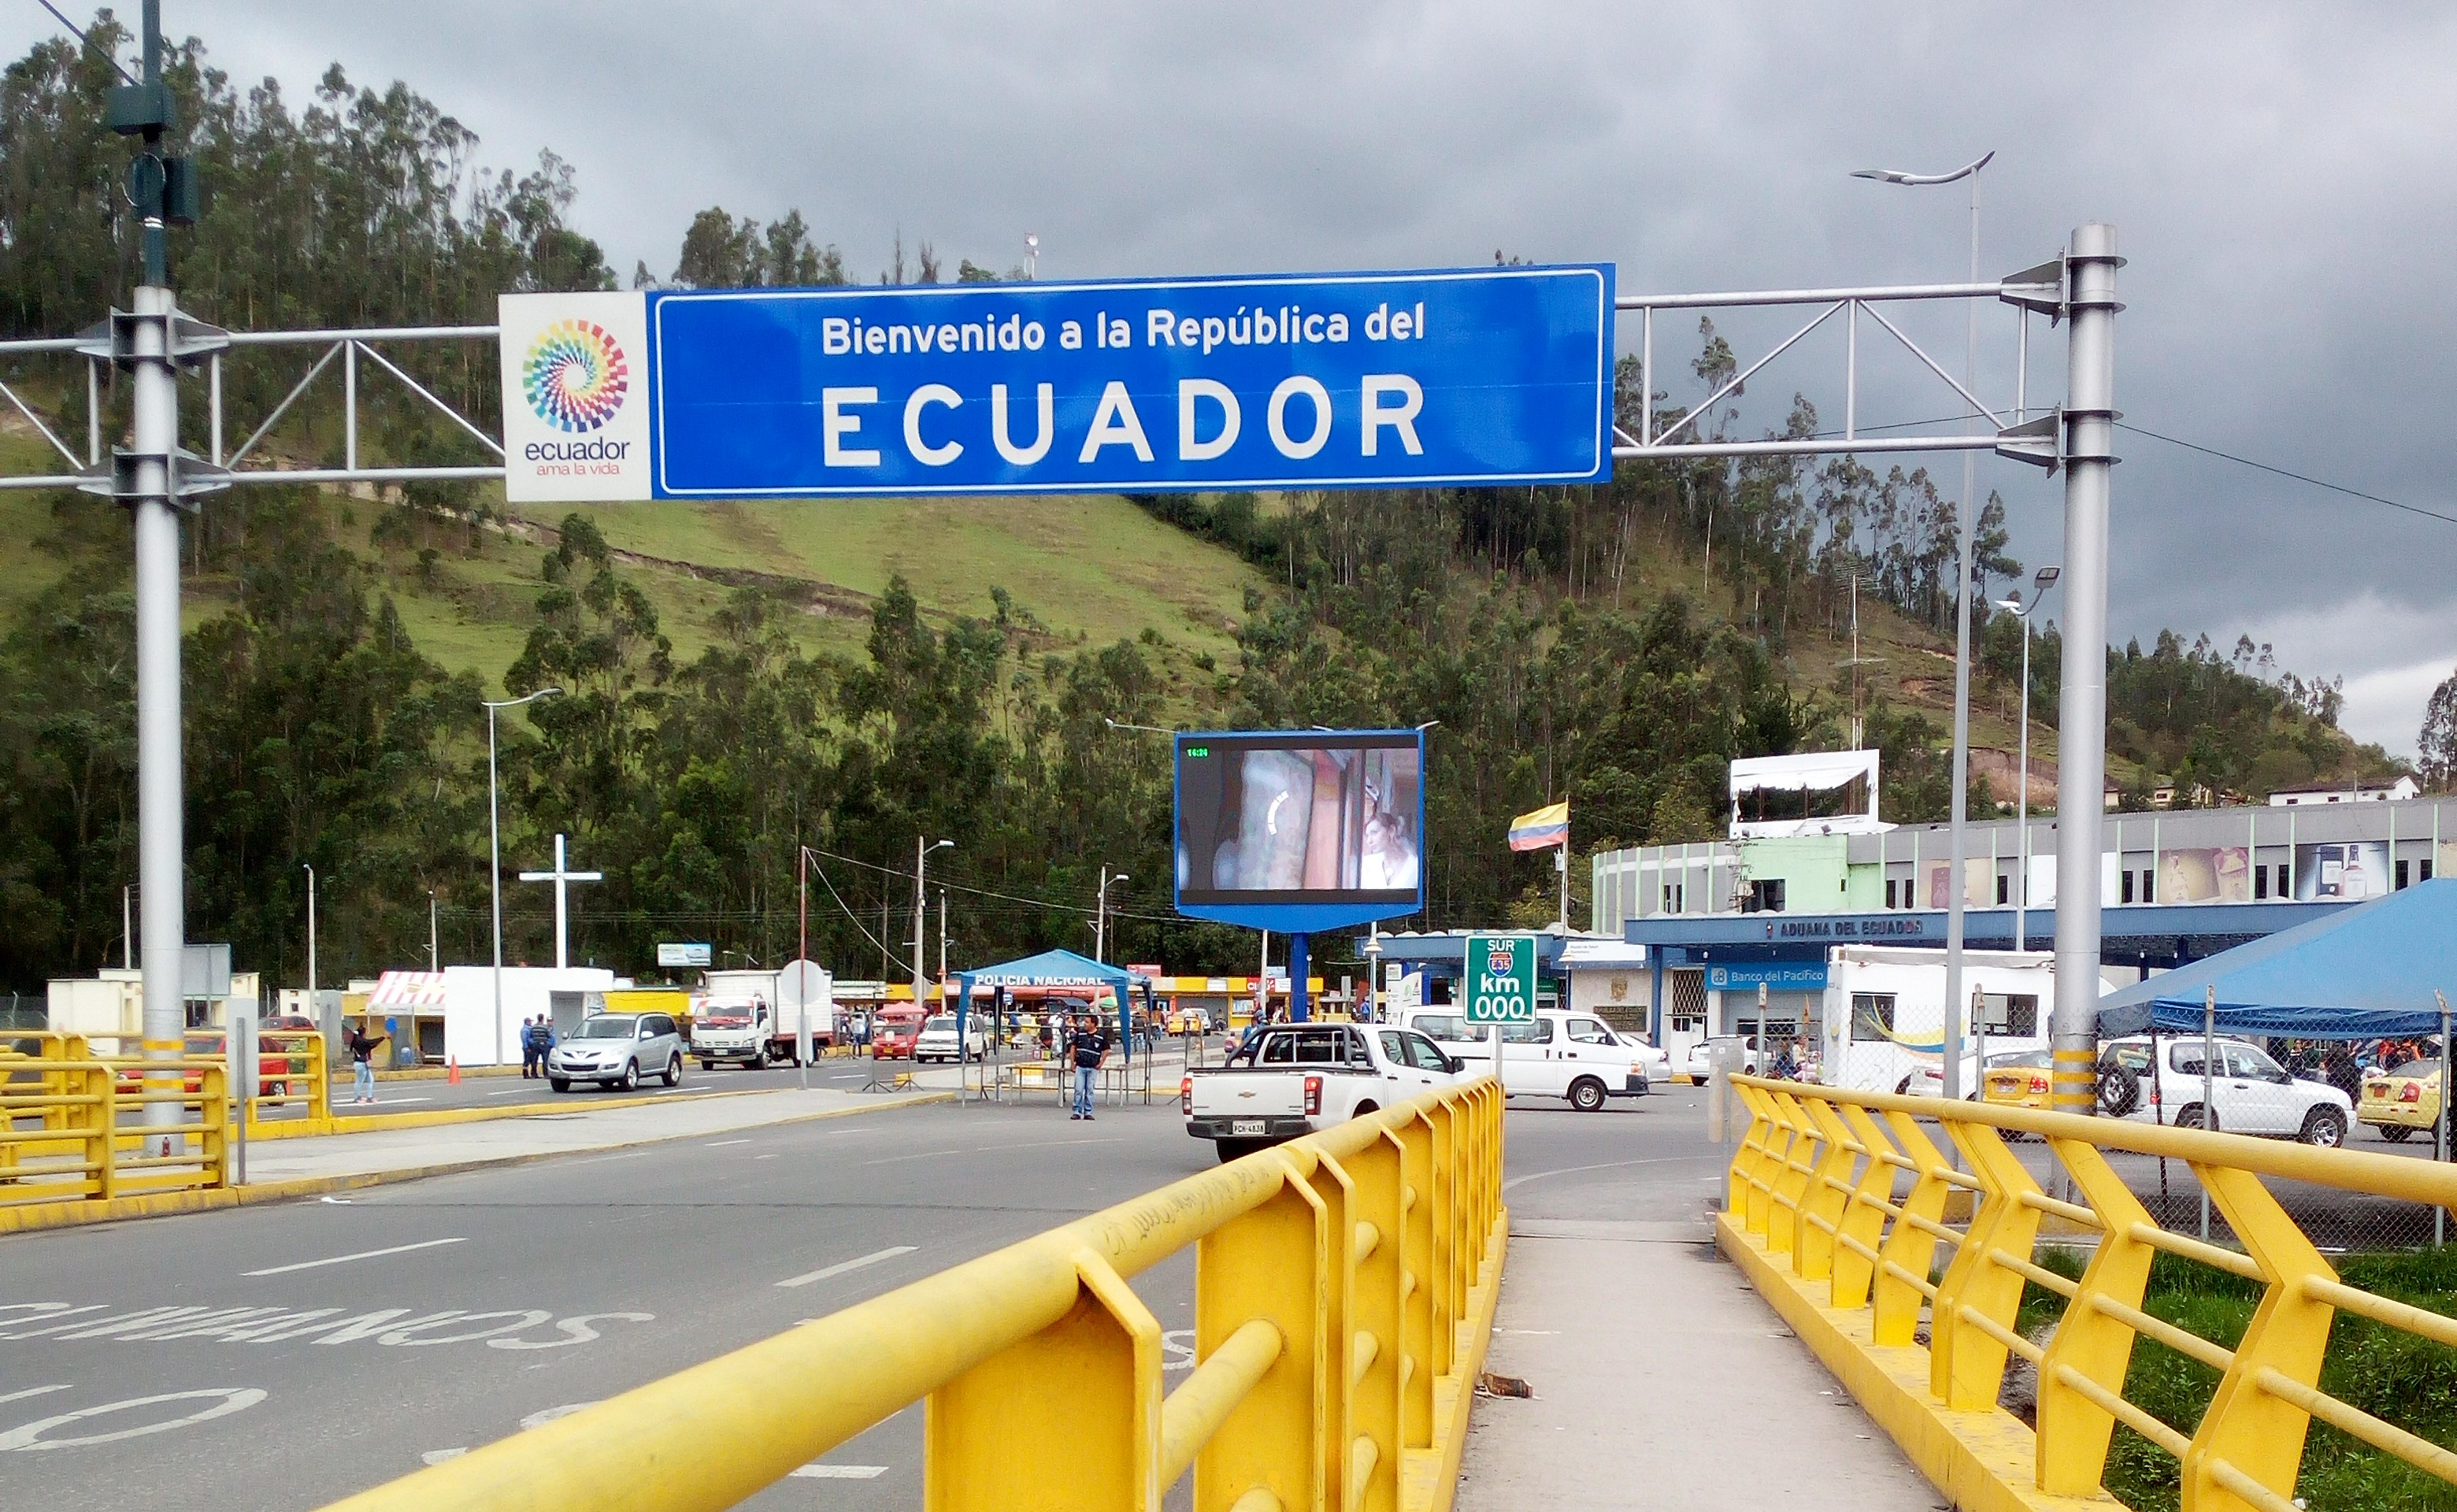 COLOMBIA TO ECUADOR BY BUS